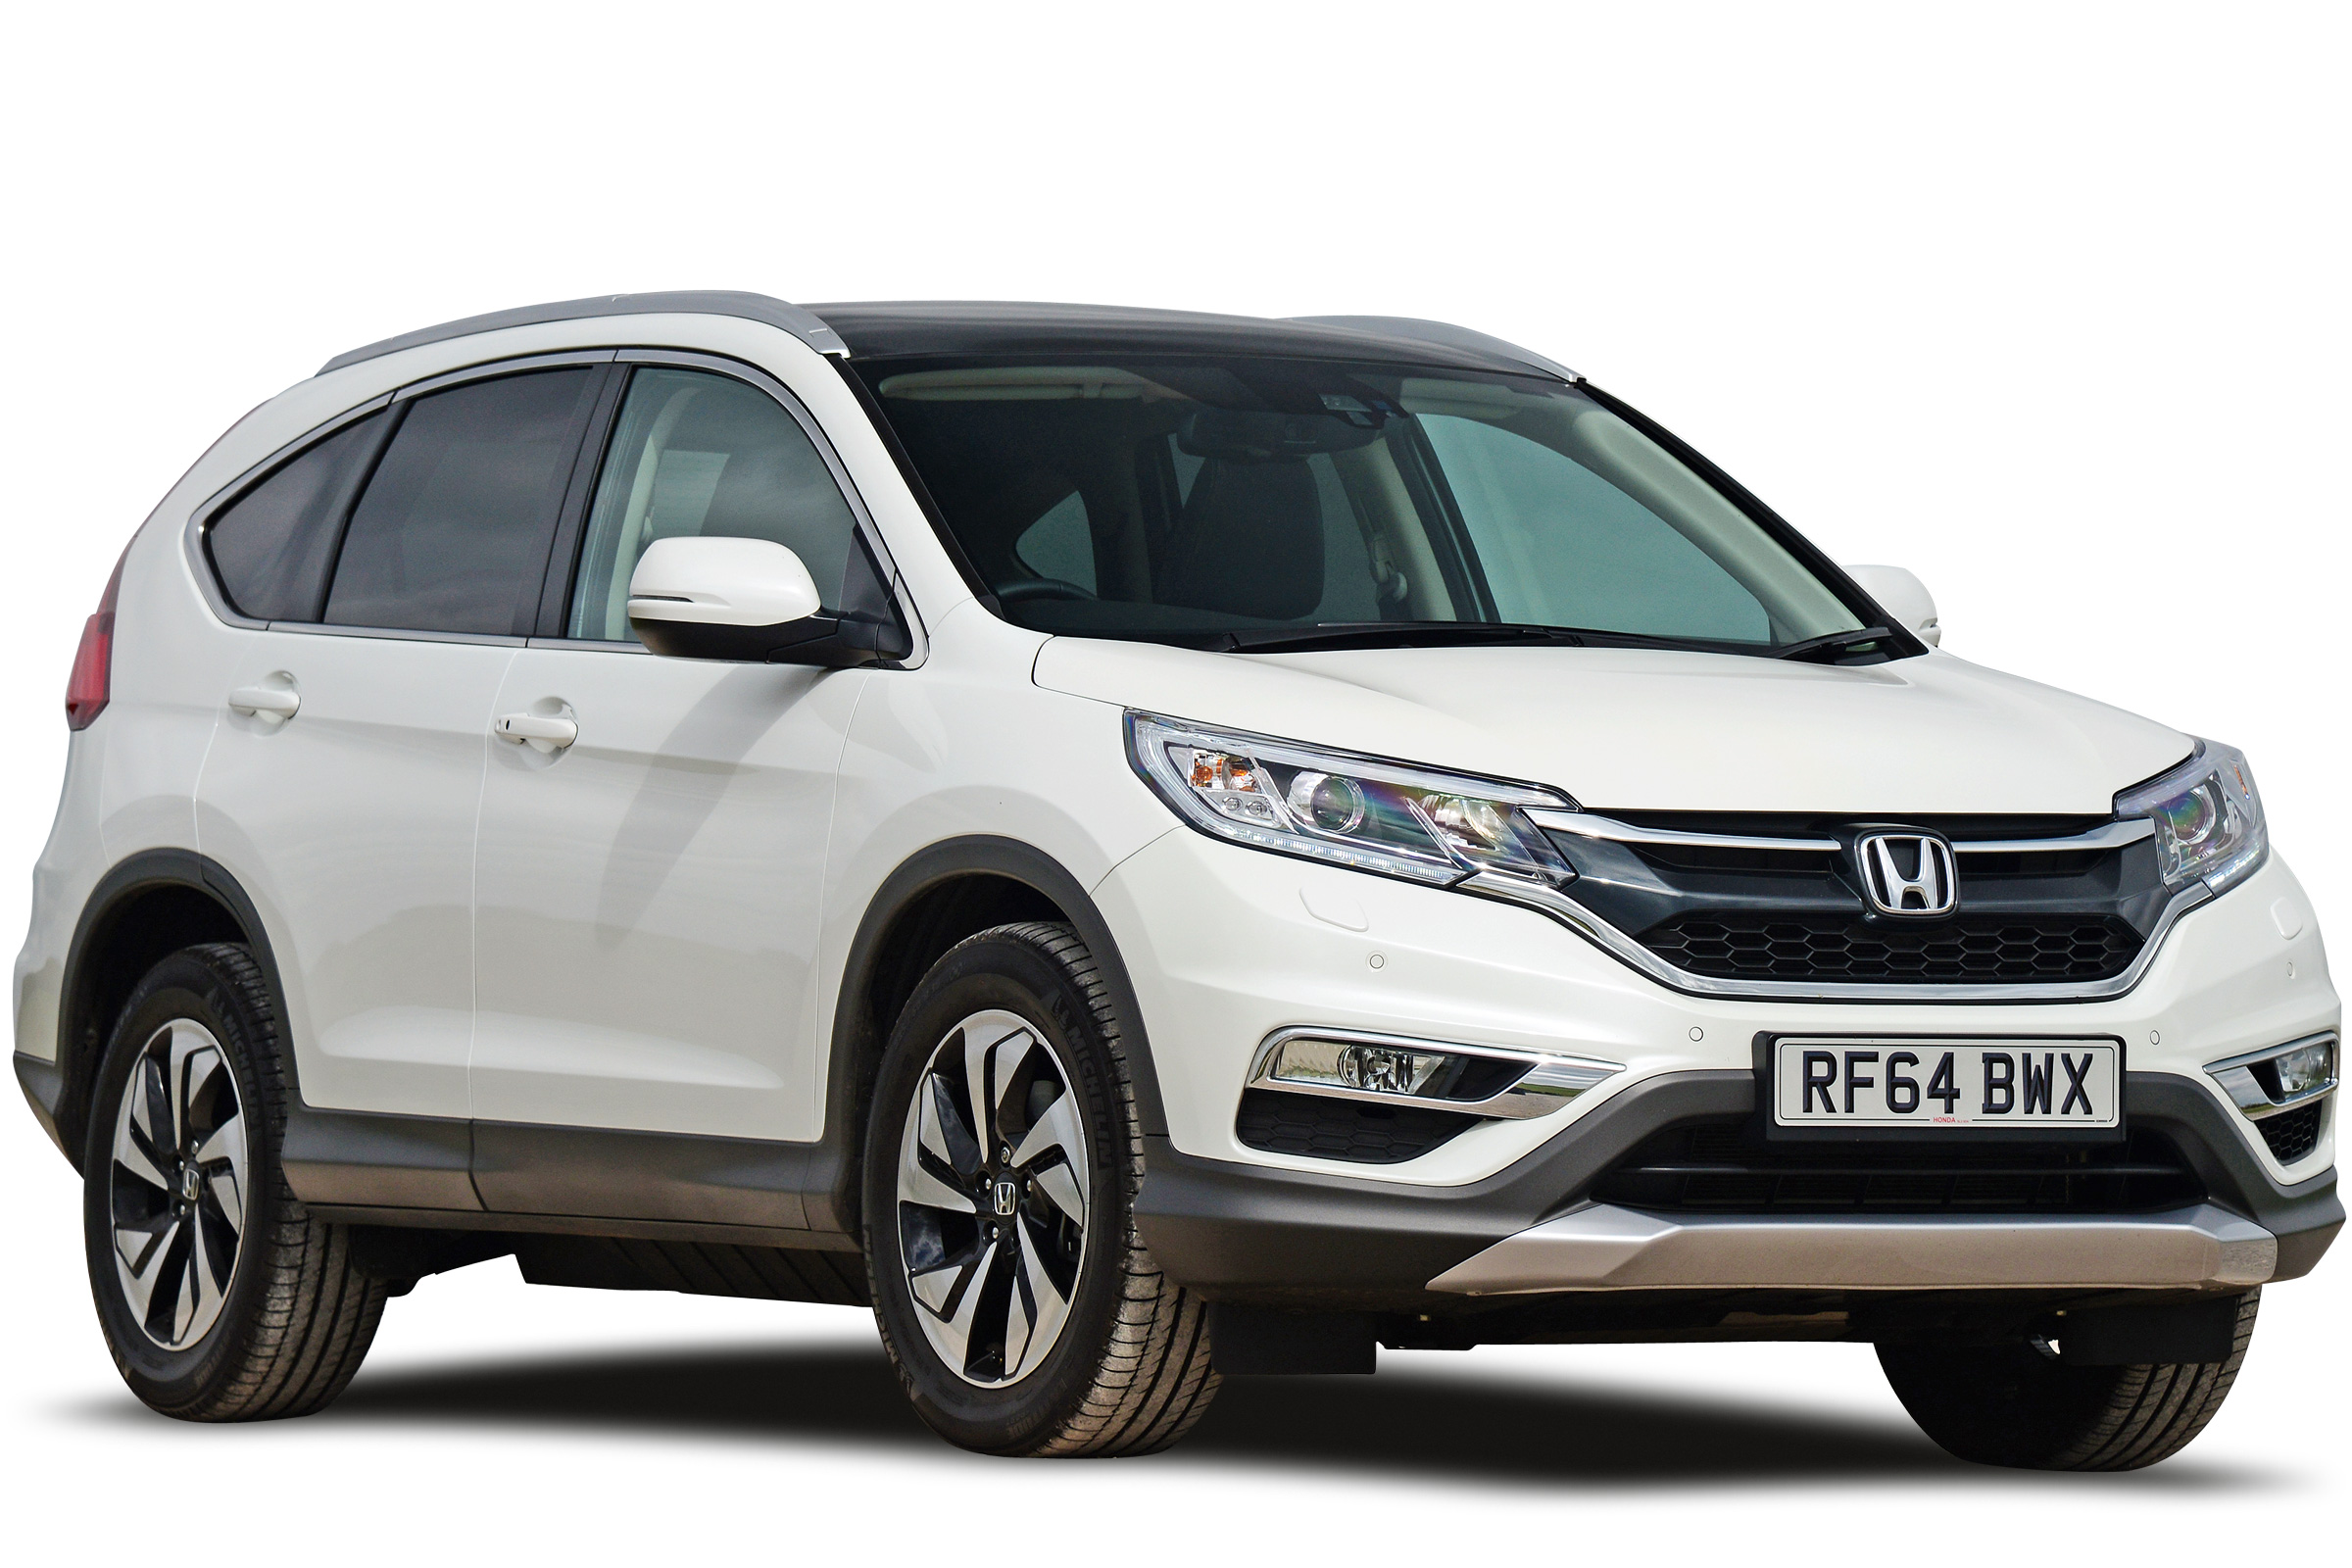 Honda Cr V Suv 2012 2018 Owner Reviews Mpg Problems Reliability Carbuyer